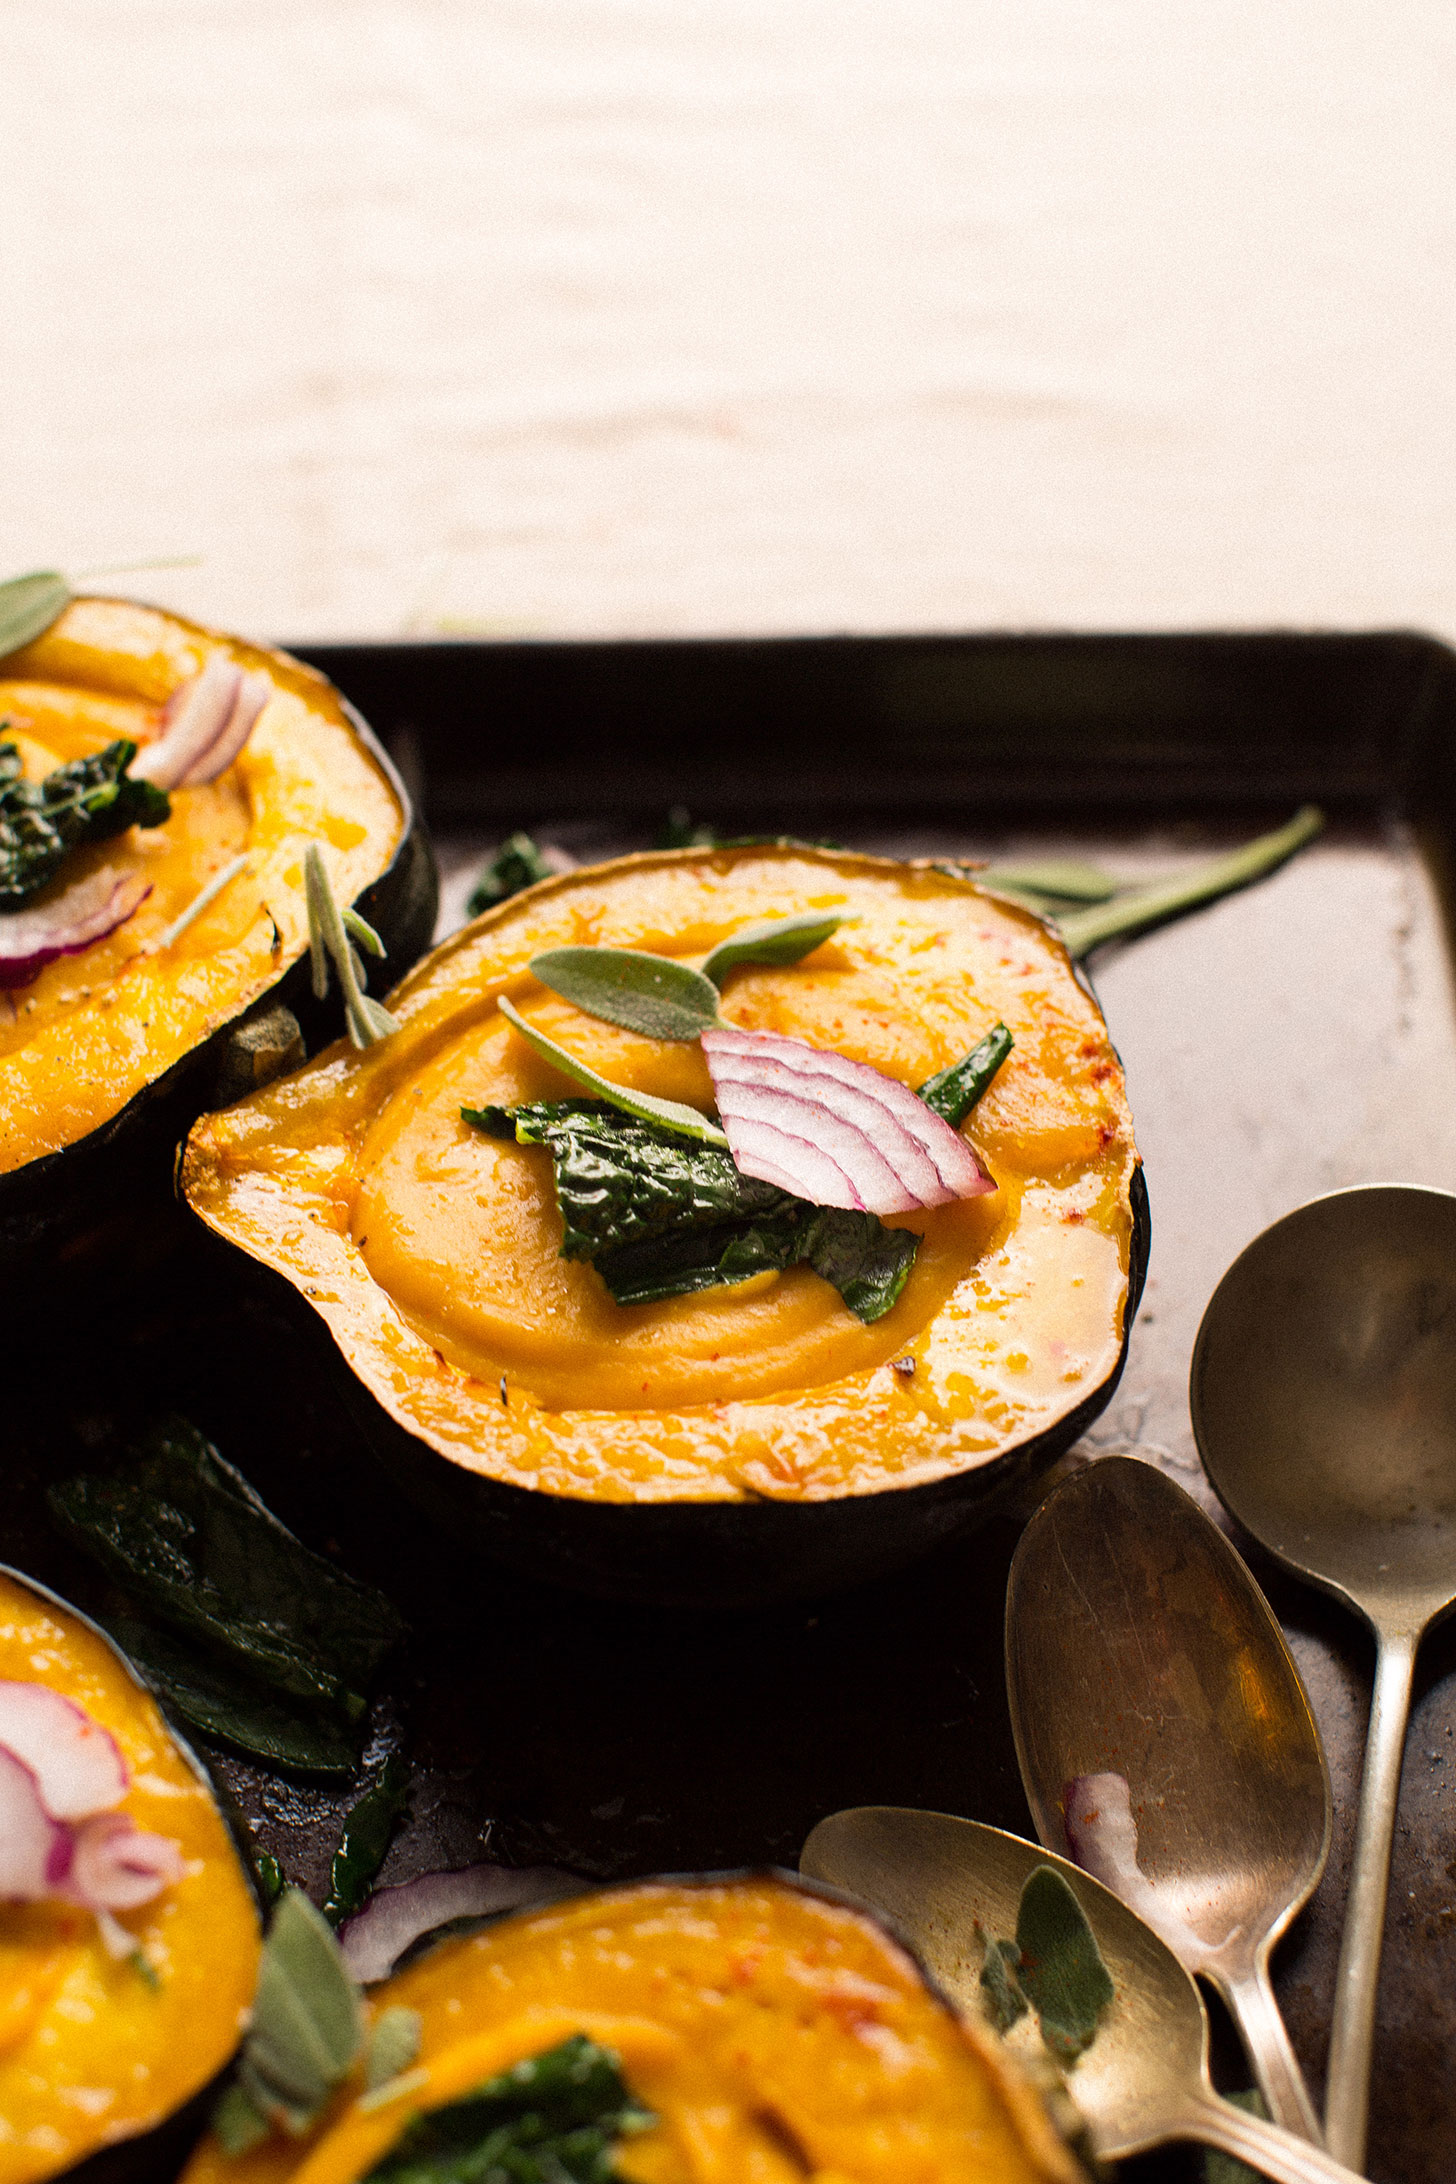 Acorn squash halves filled with squash soup and topped with onions, kale, and sage leaves